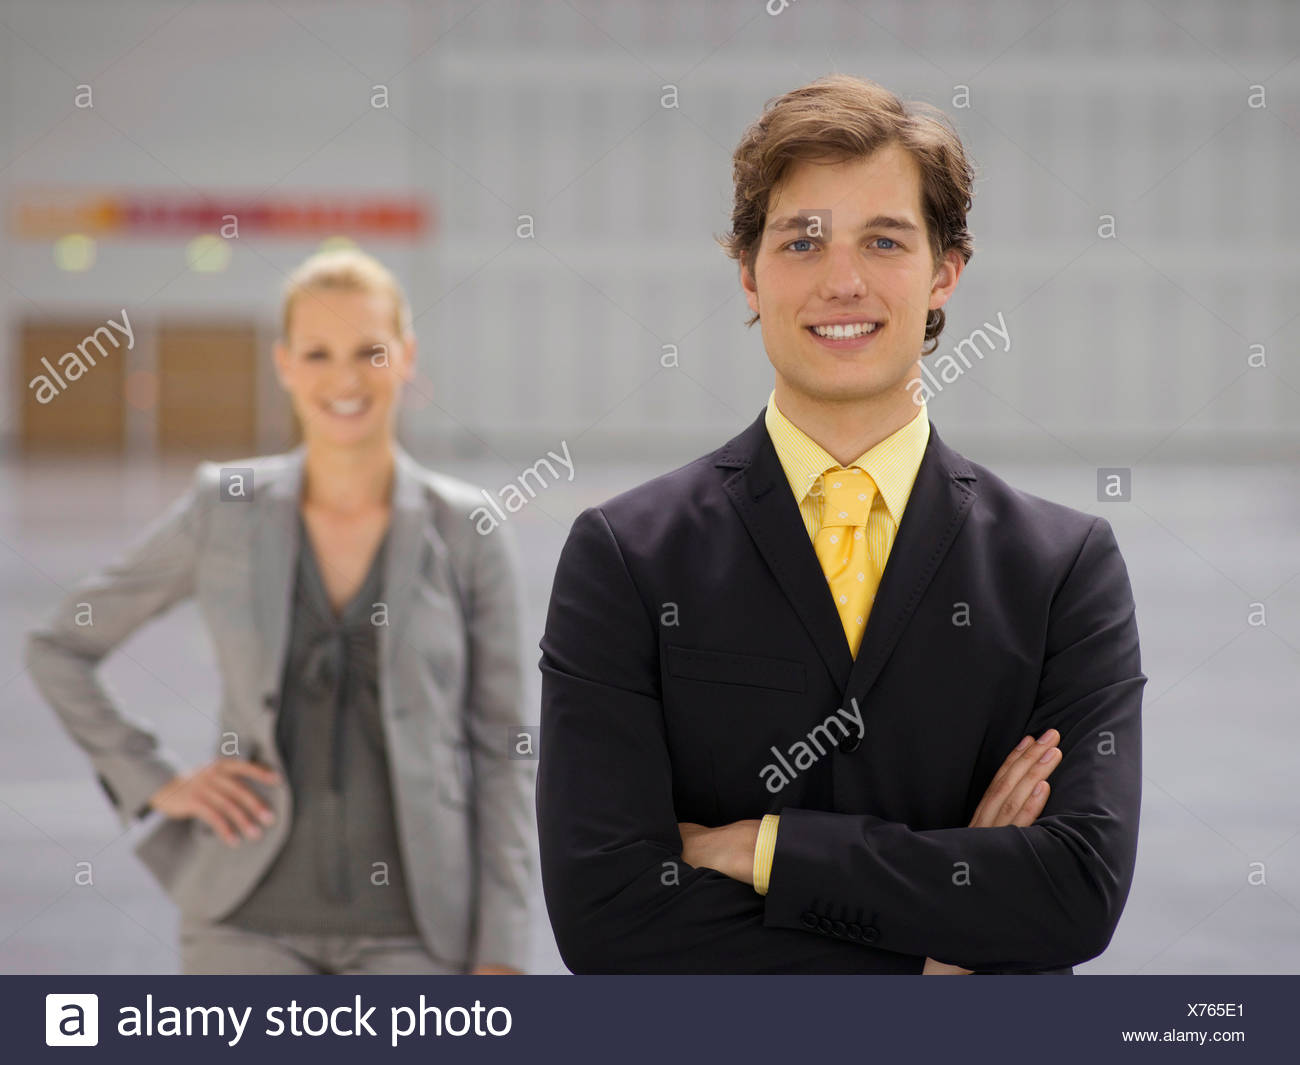 Businesspeople posing suits - Stock Image